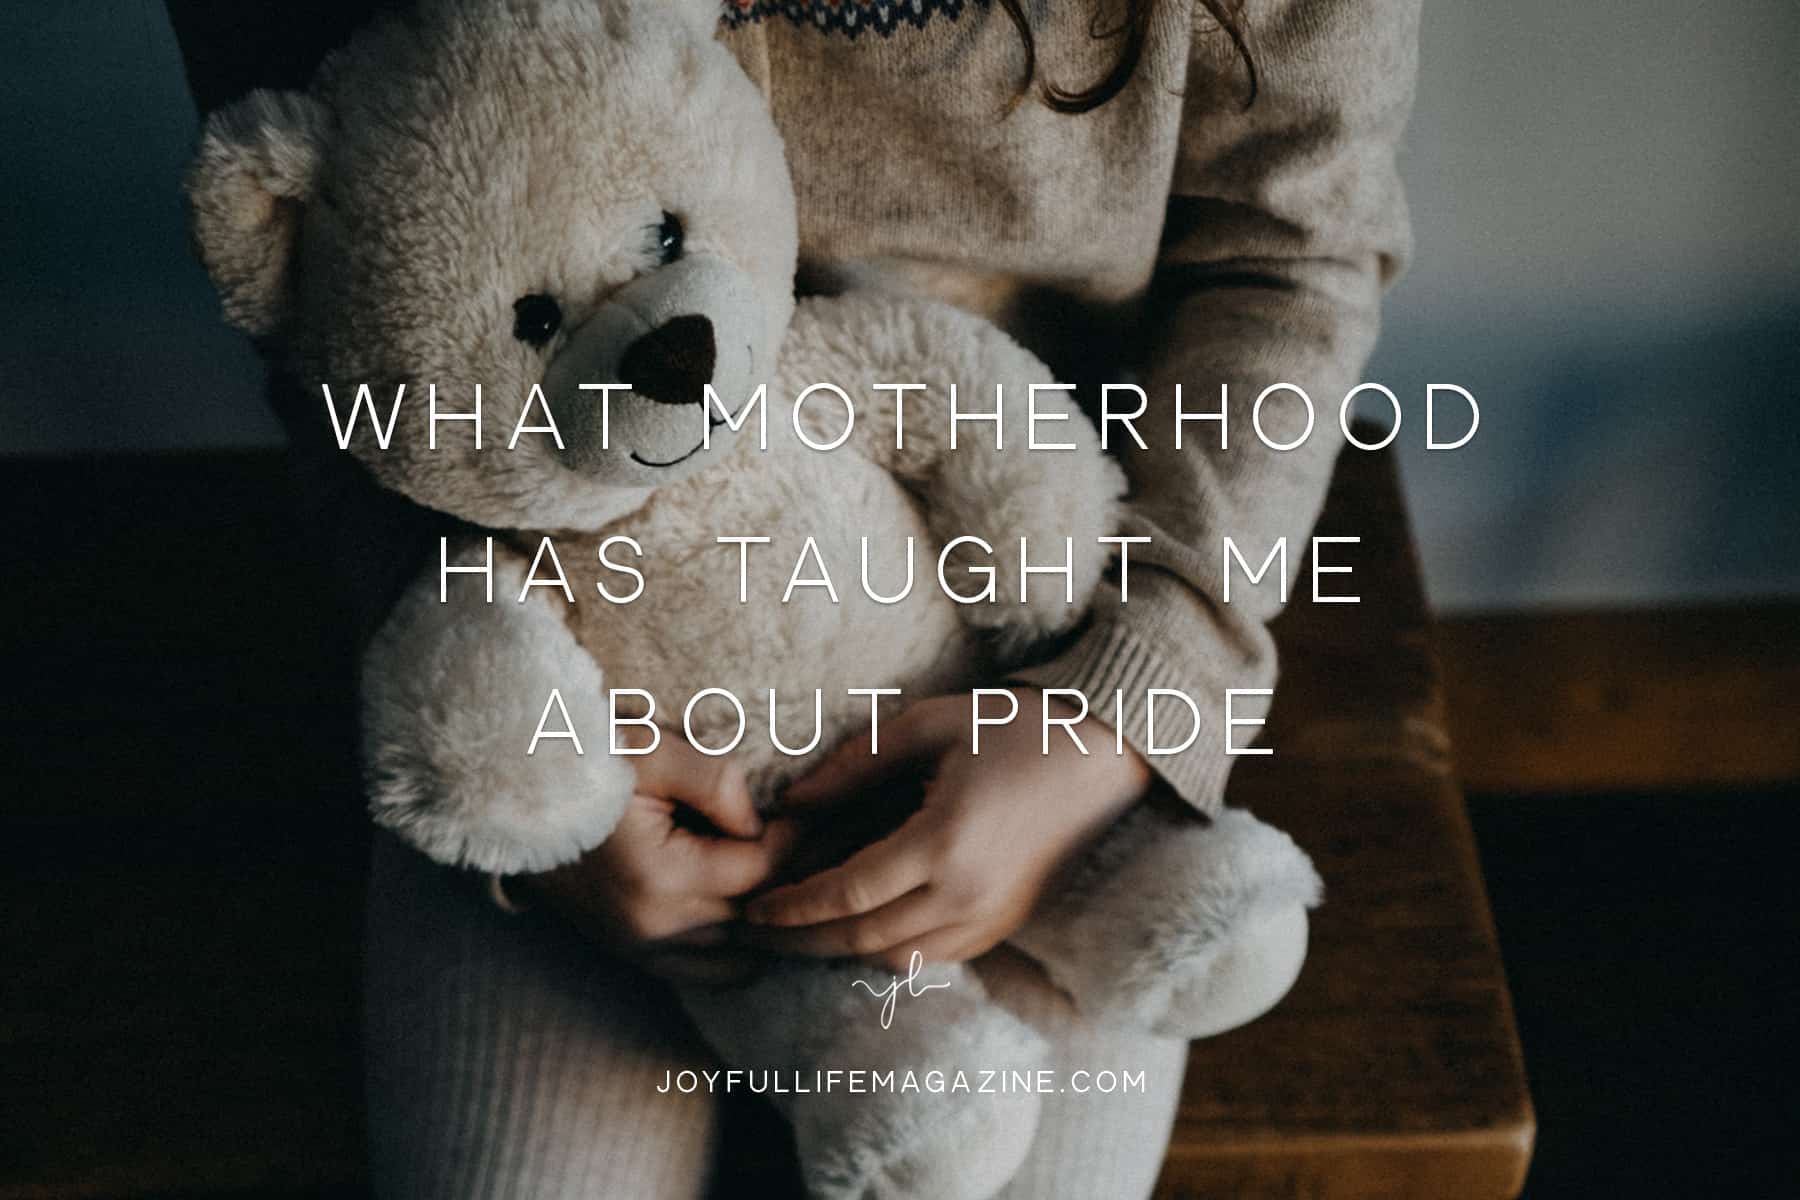 What Motherhood Has Taught Me About Pride | by Sandi Sutton | The Joyful Life Magazine